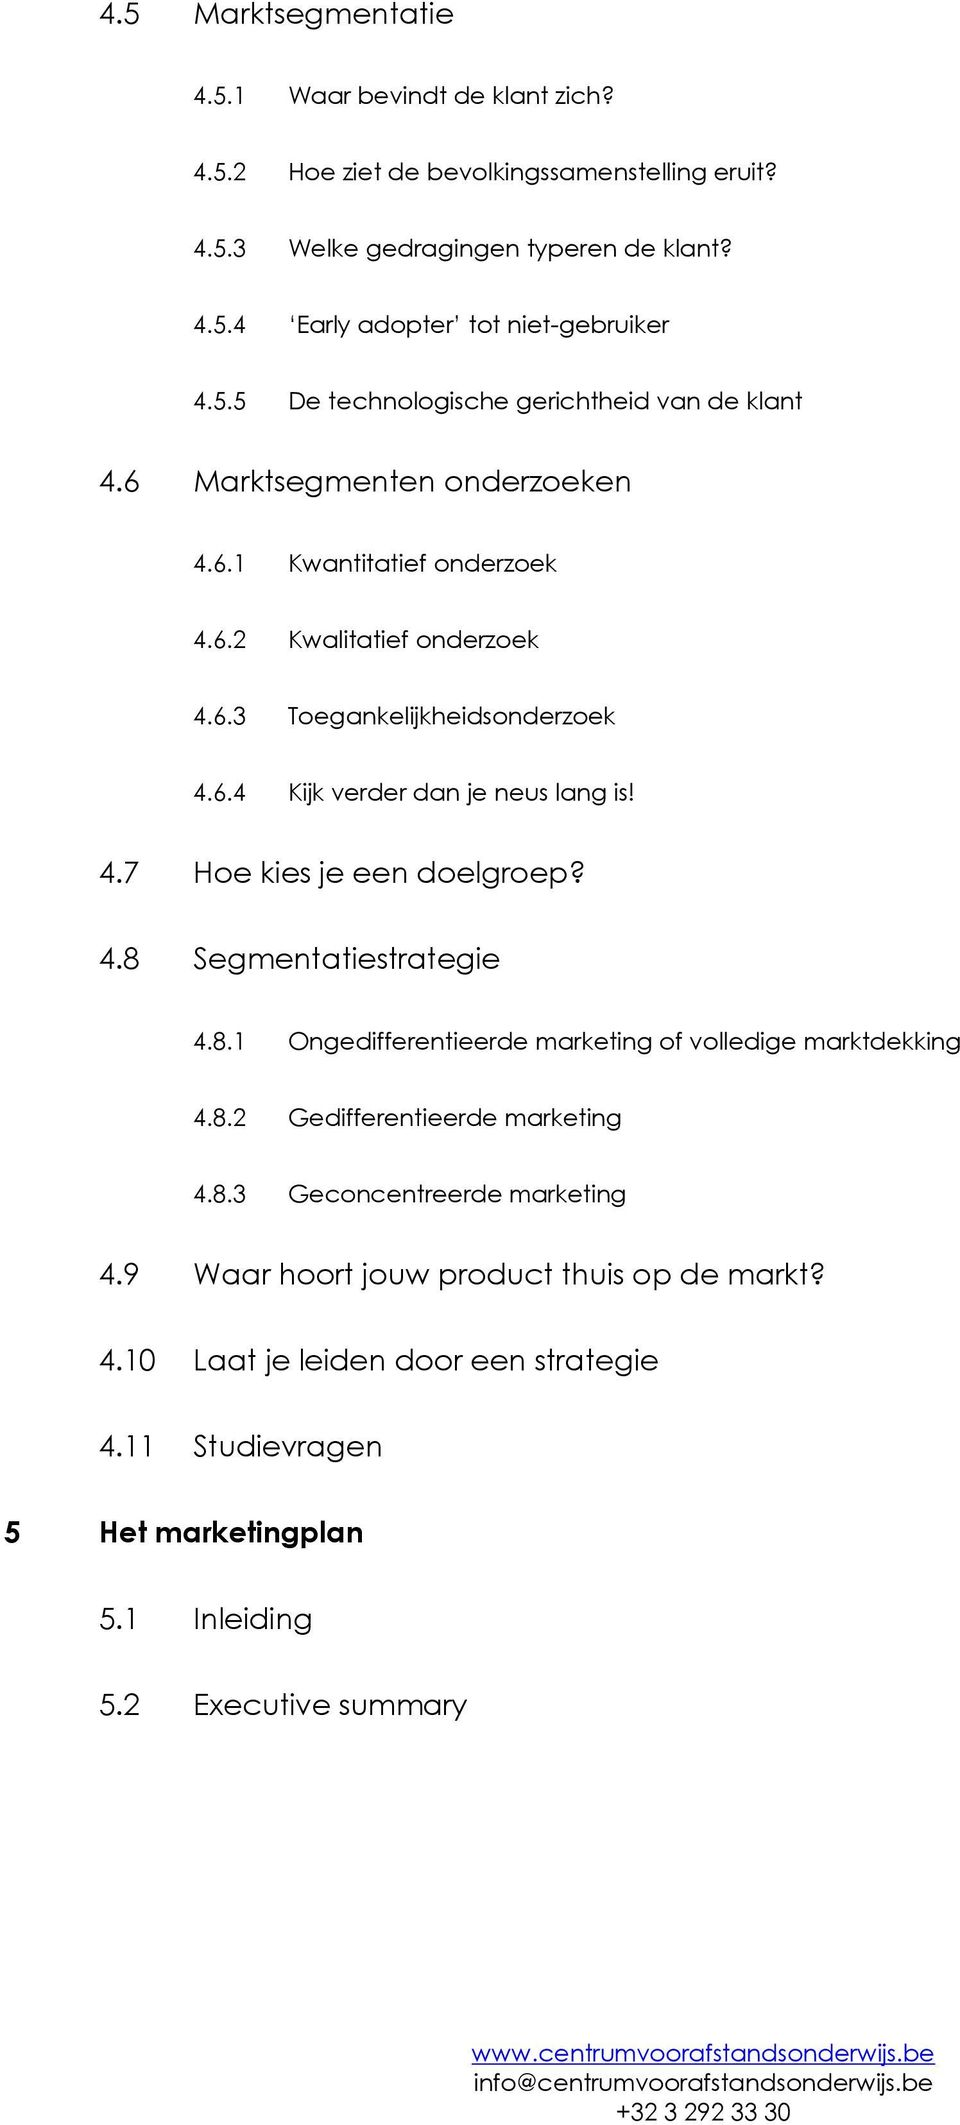 4.7 Hoe kies je een doelgroep? 4.8 Segmentatiestrategie 4.8.1 Ongedifferentieerde marketing of volledige marktdekking 4.8.2 Gedifferentieerde marketing 4.8.3 Geconcentreerde marketing 4.